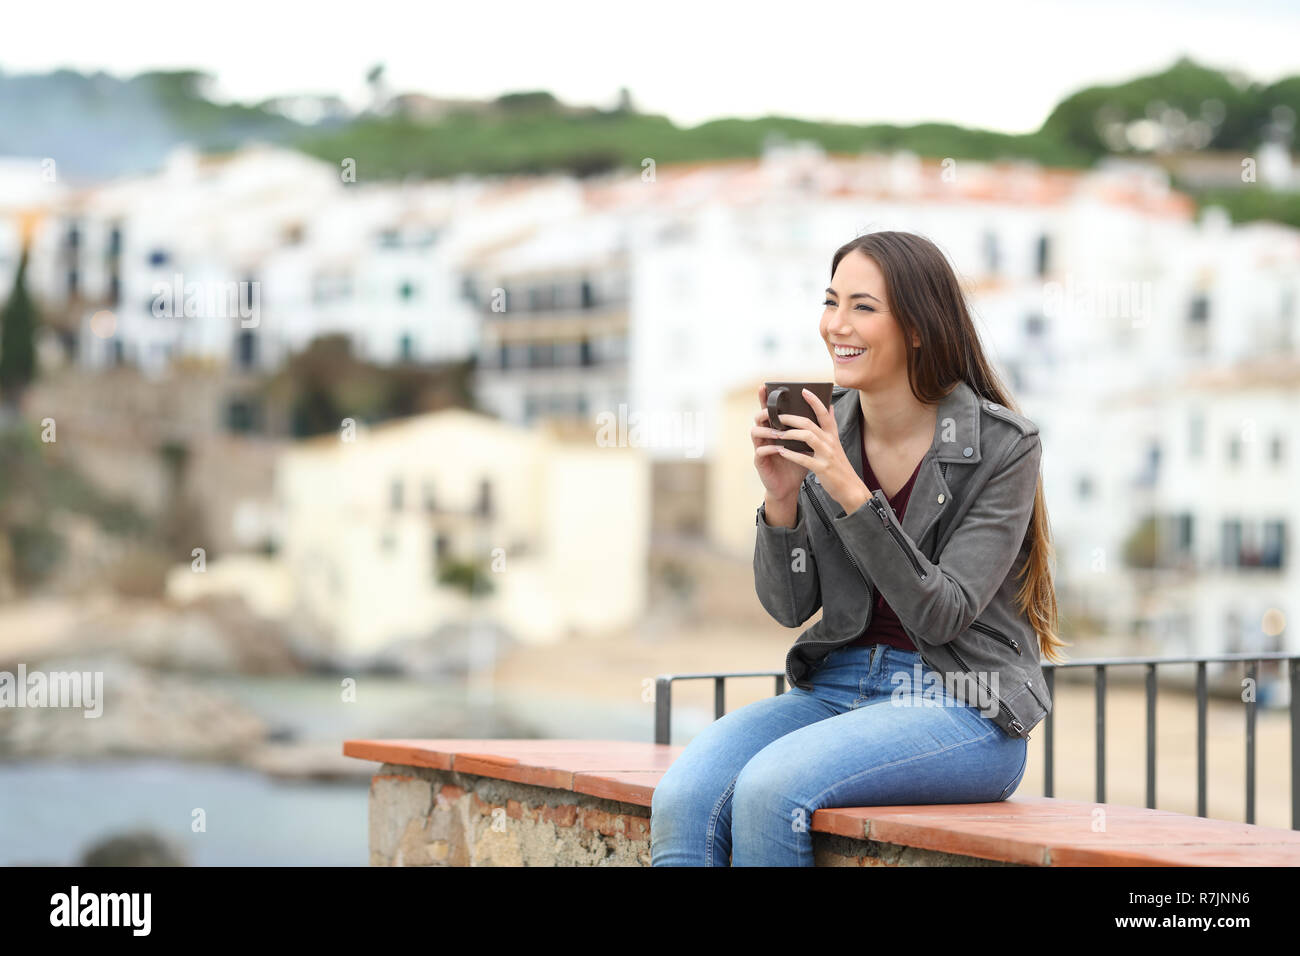 Happy woman sitting on a ledge drinking coffee and looking away in a coast town - Stock Image